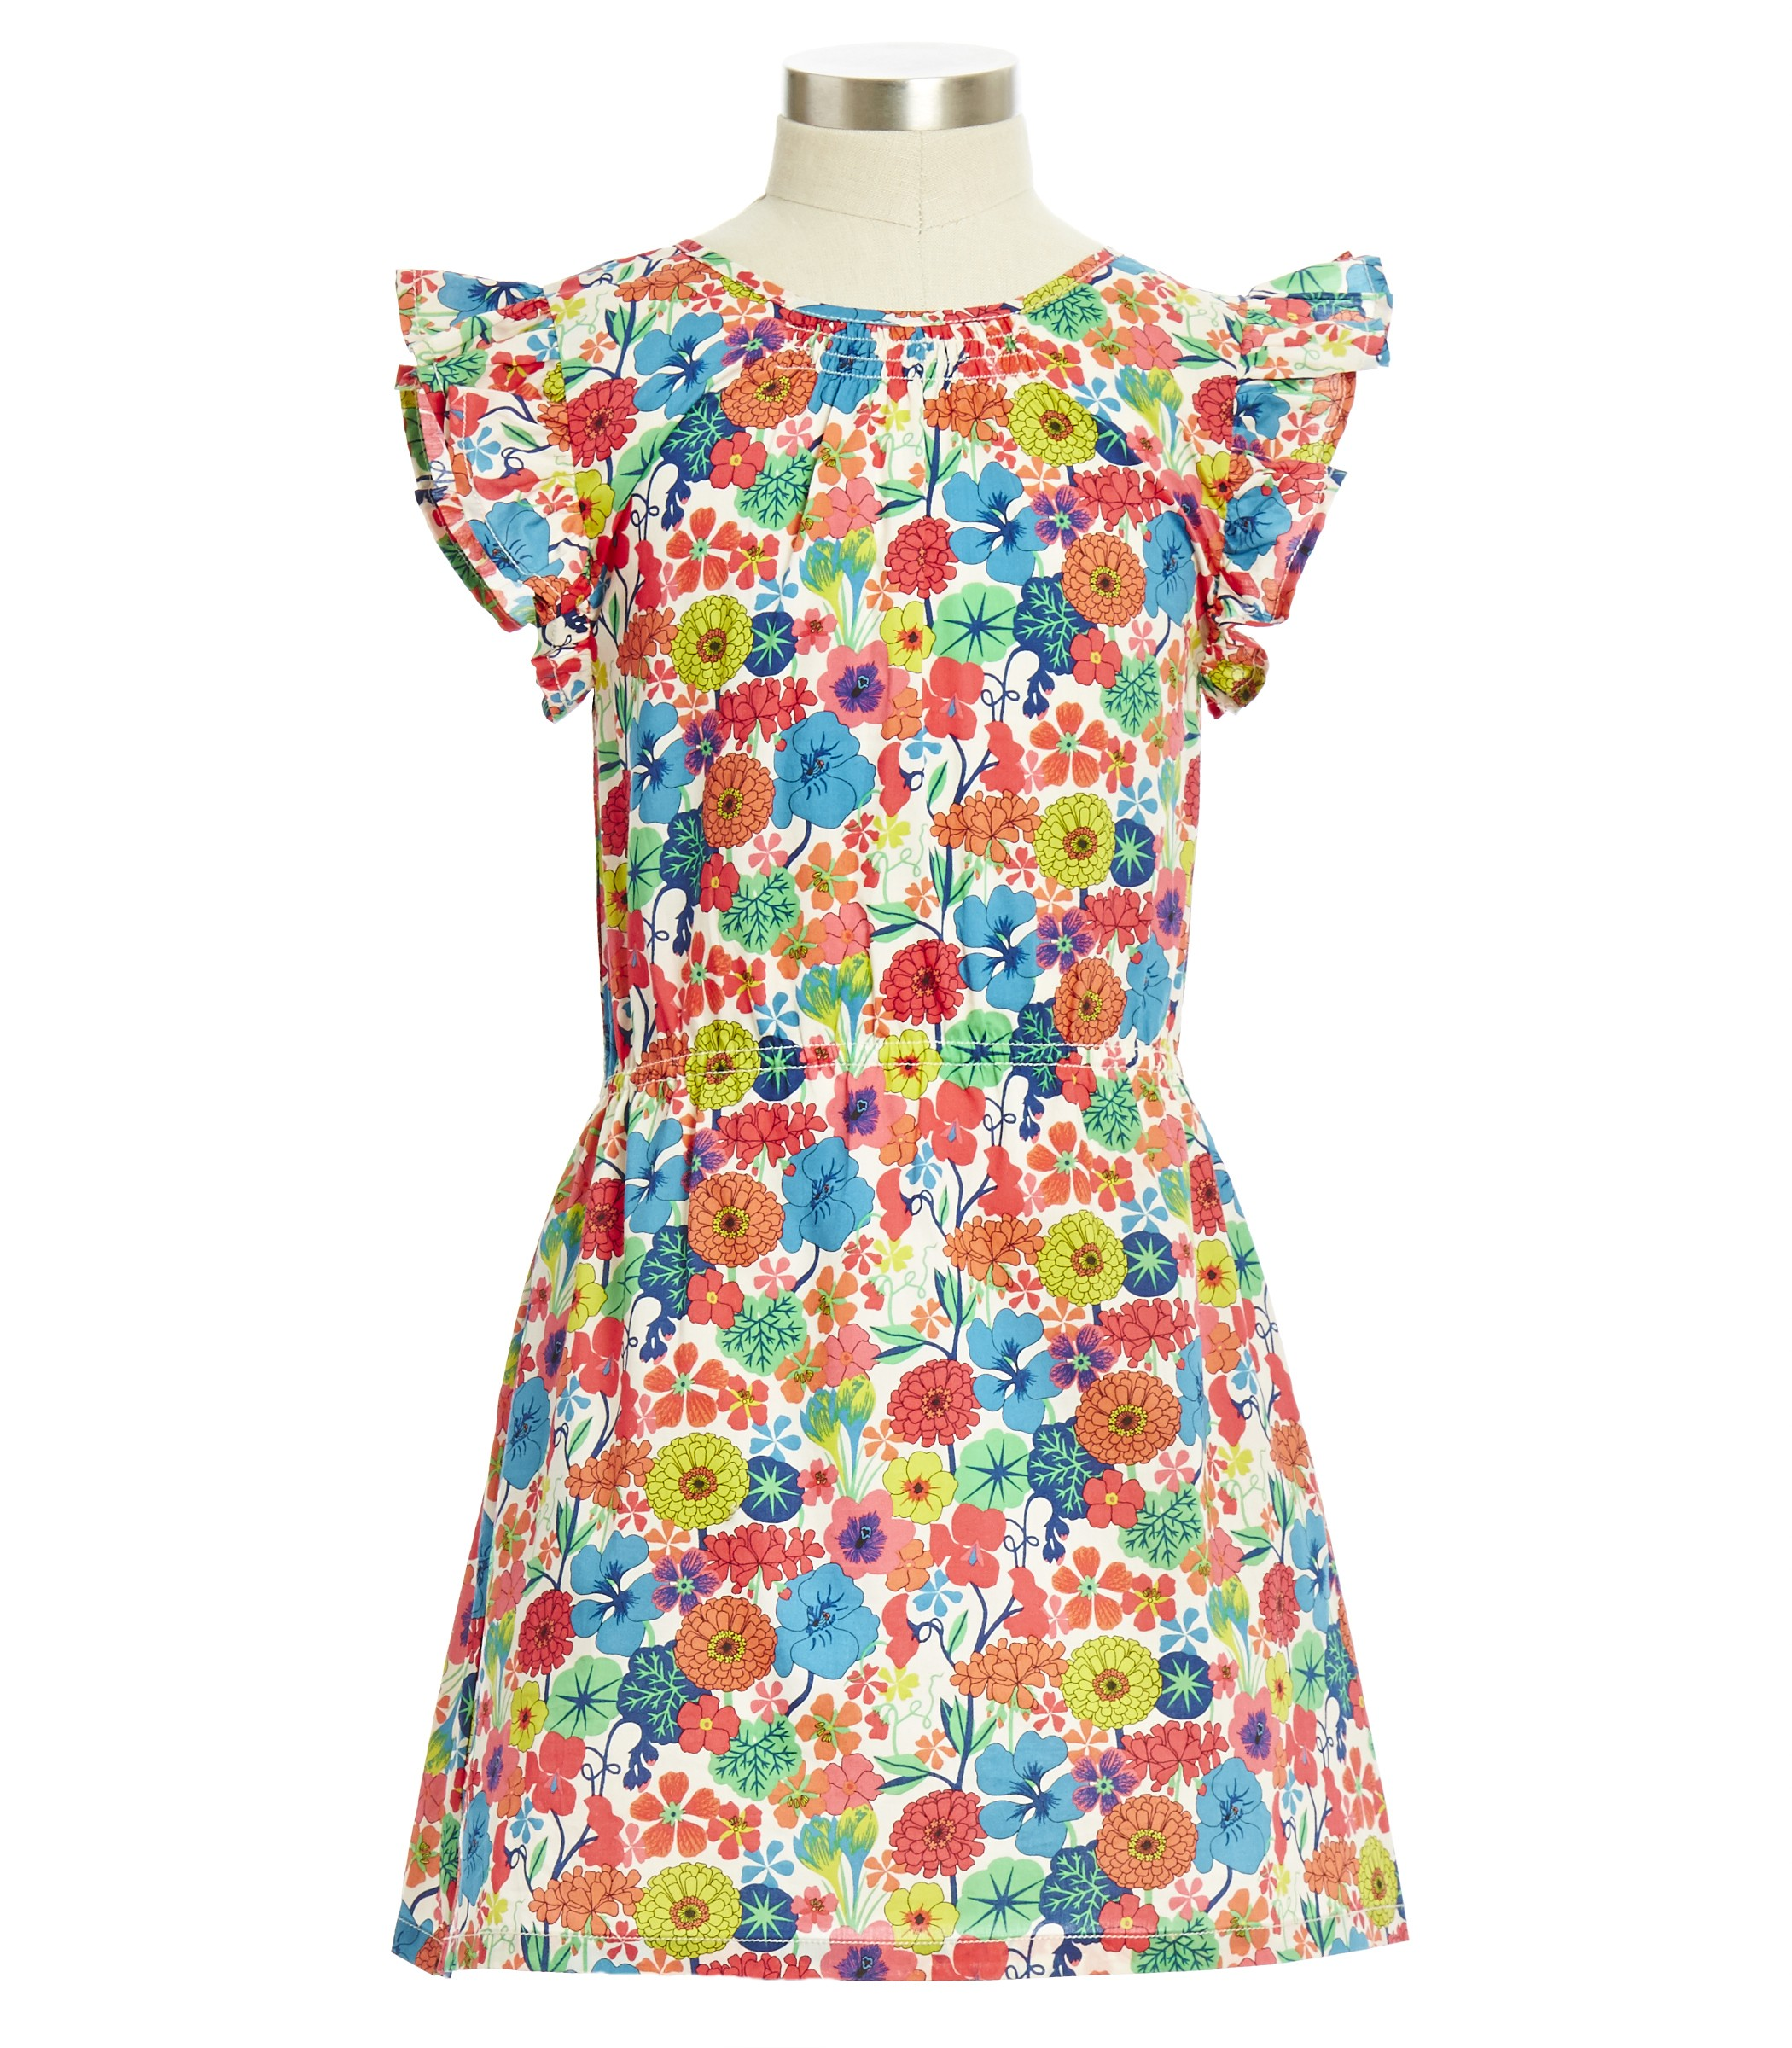 Peek O'Keefe Dress - Liberty of London print